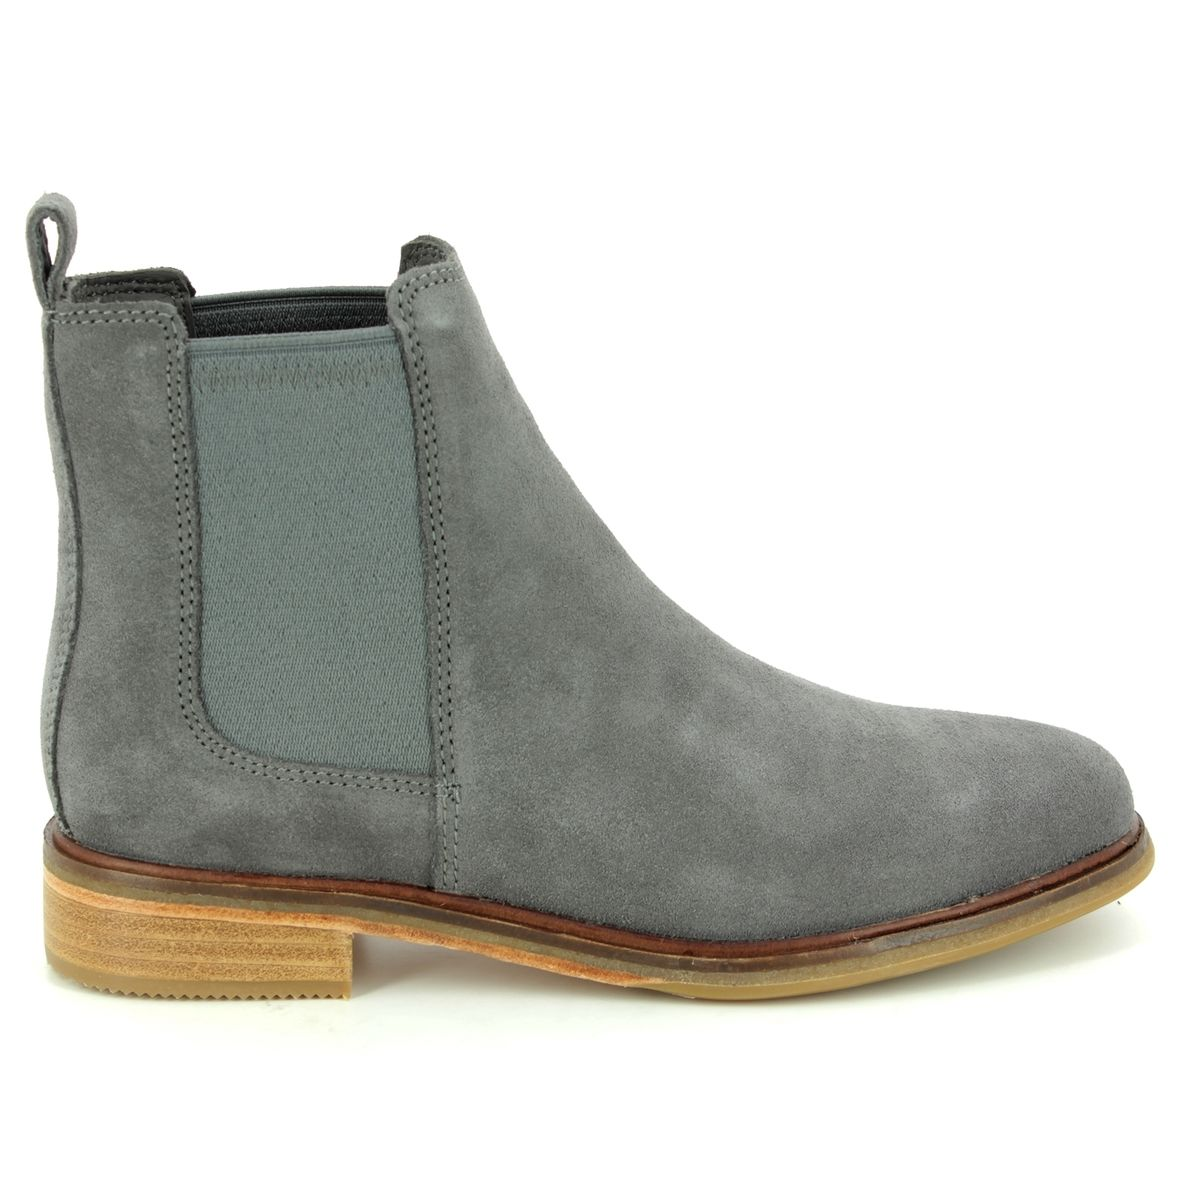 dcc0a01bcdc18 Clarks Chelsea Boots - Grey suede - 3672/14D CLARKDALE ARLO